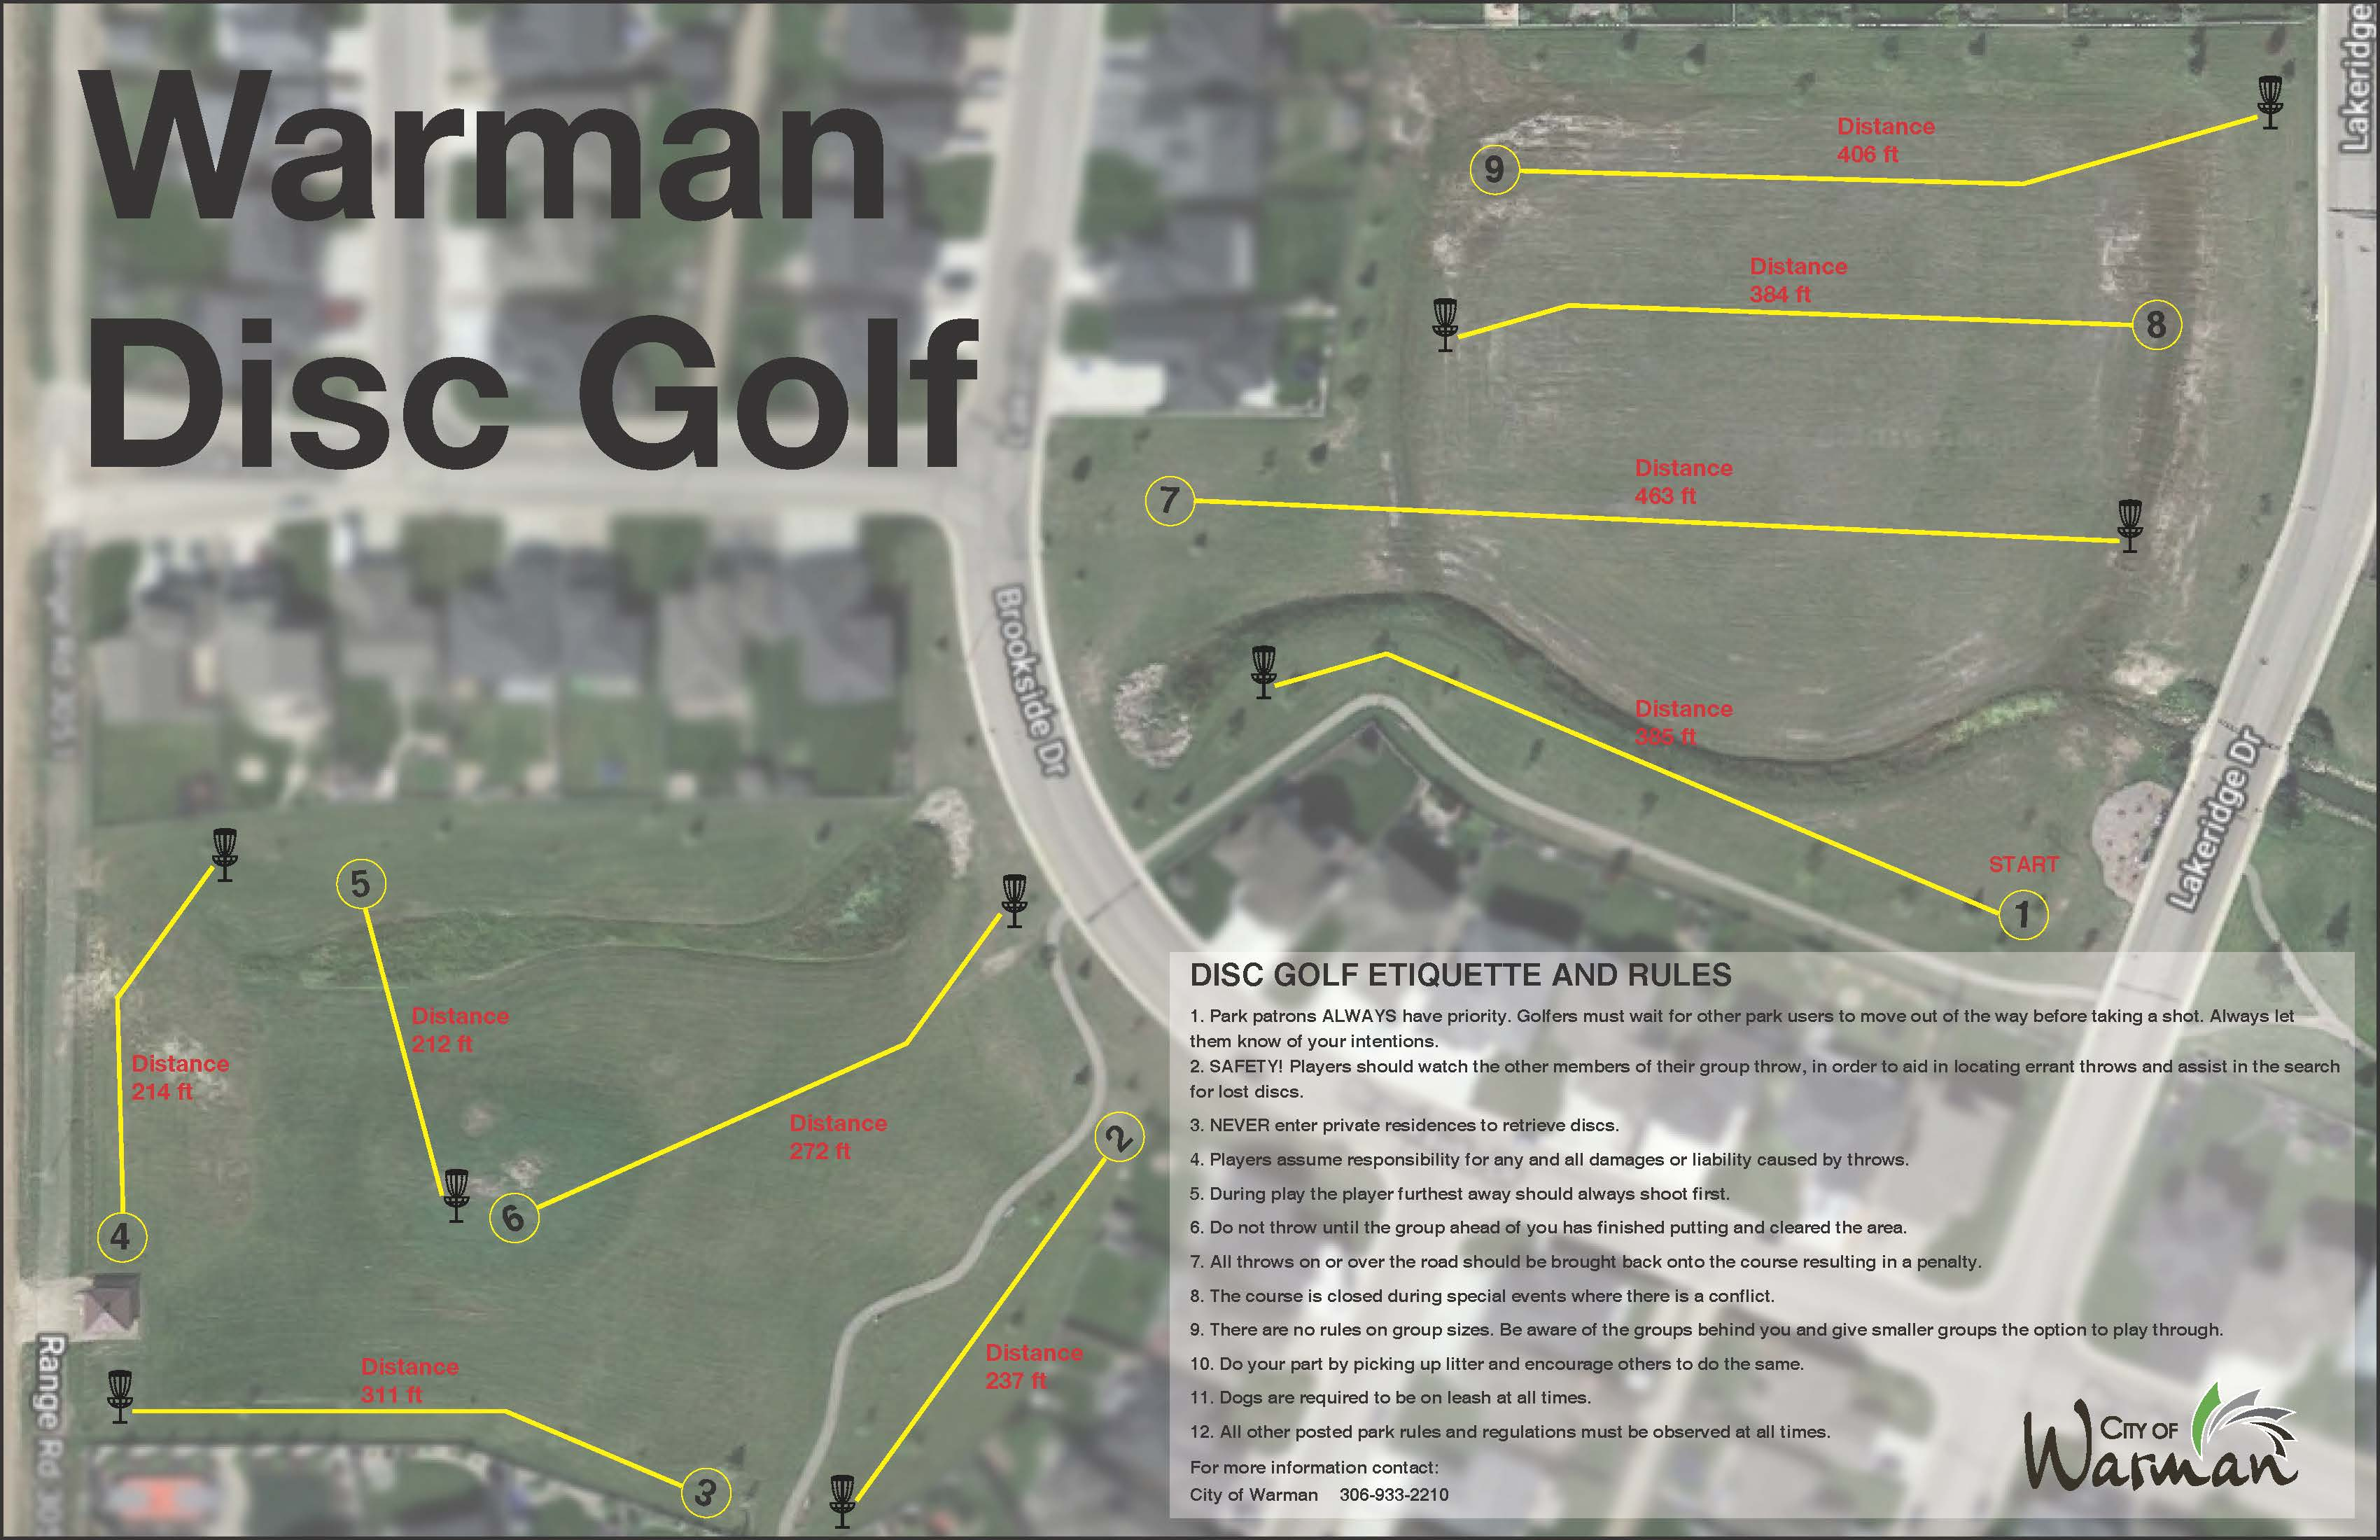 Disc Golf Course Map 2019 Park Sign2 with distances